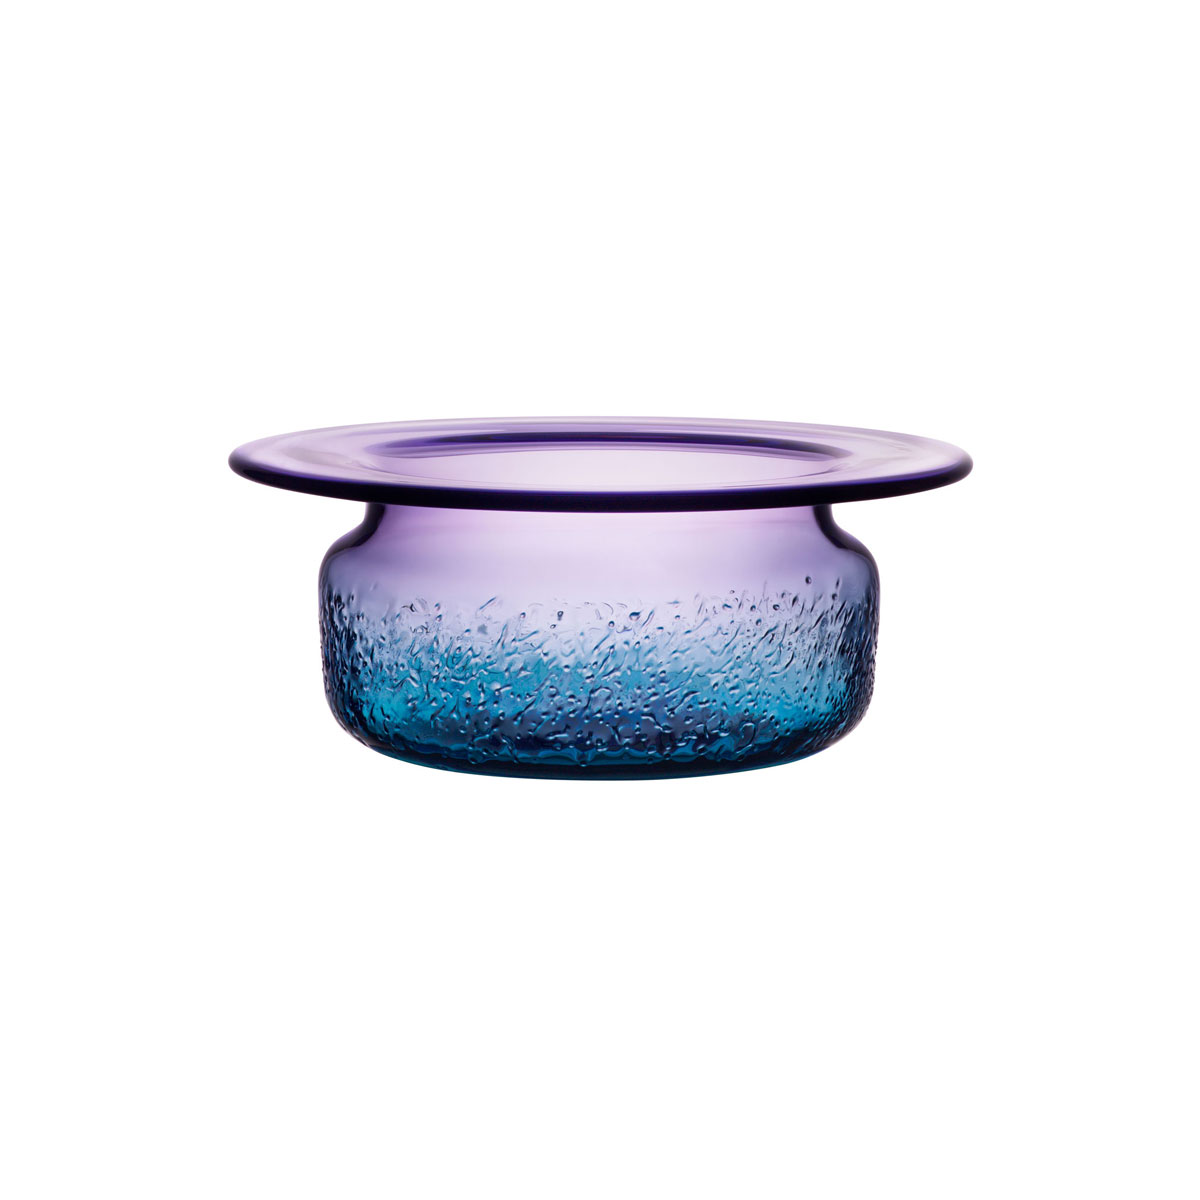 Kosta Boda Aurora Blue and Violet Crystal Bowl